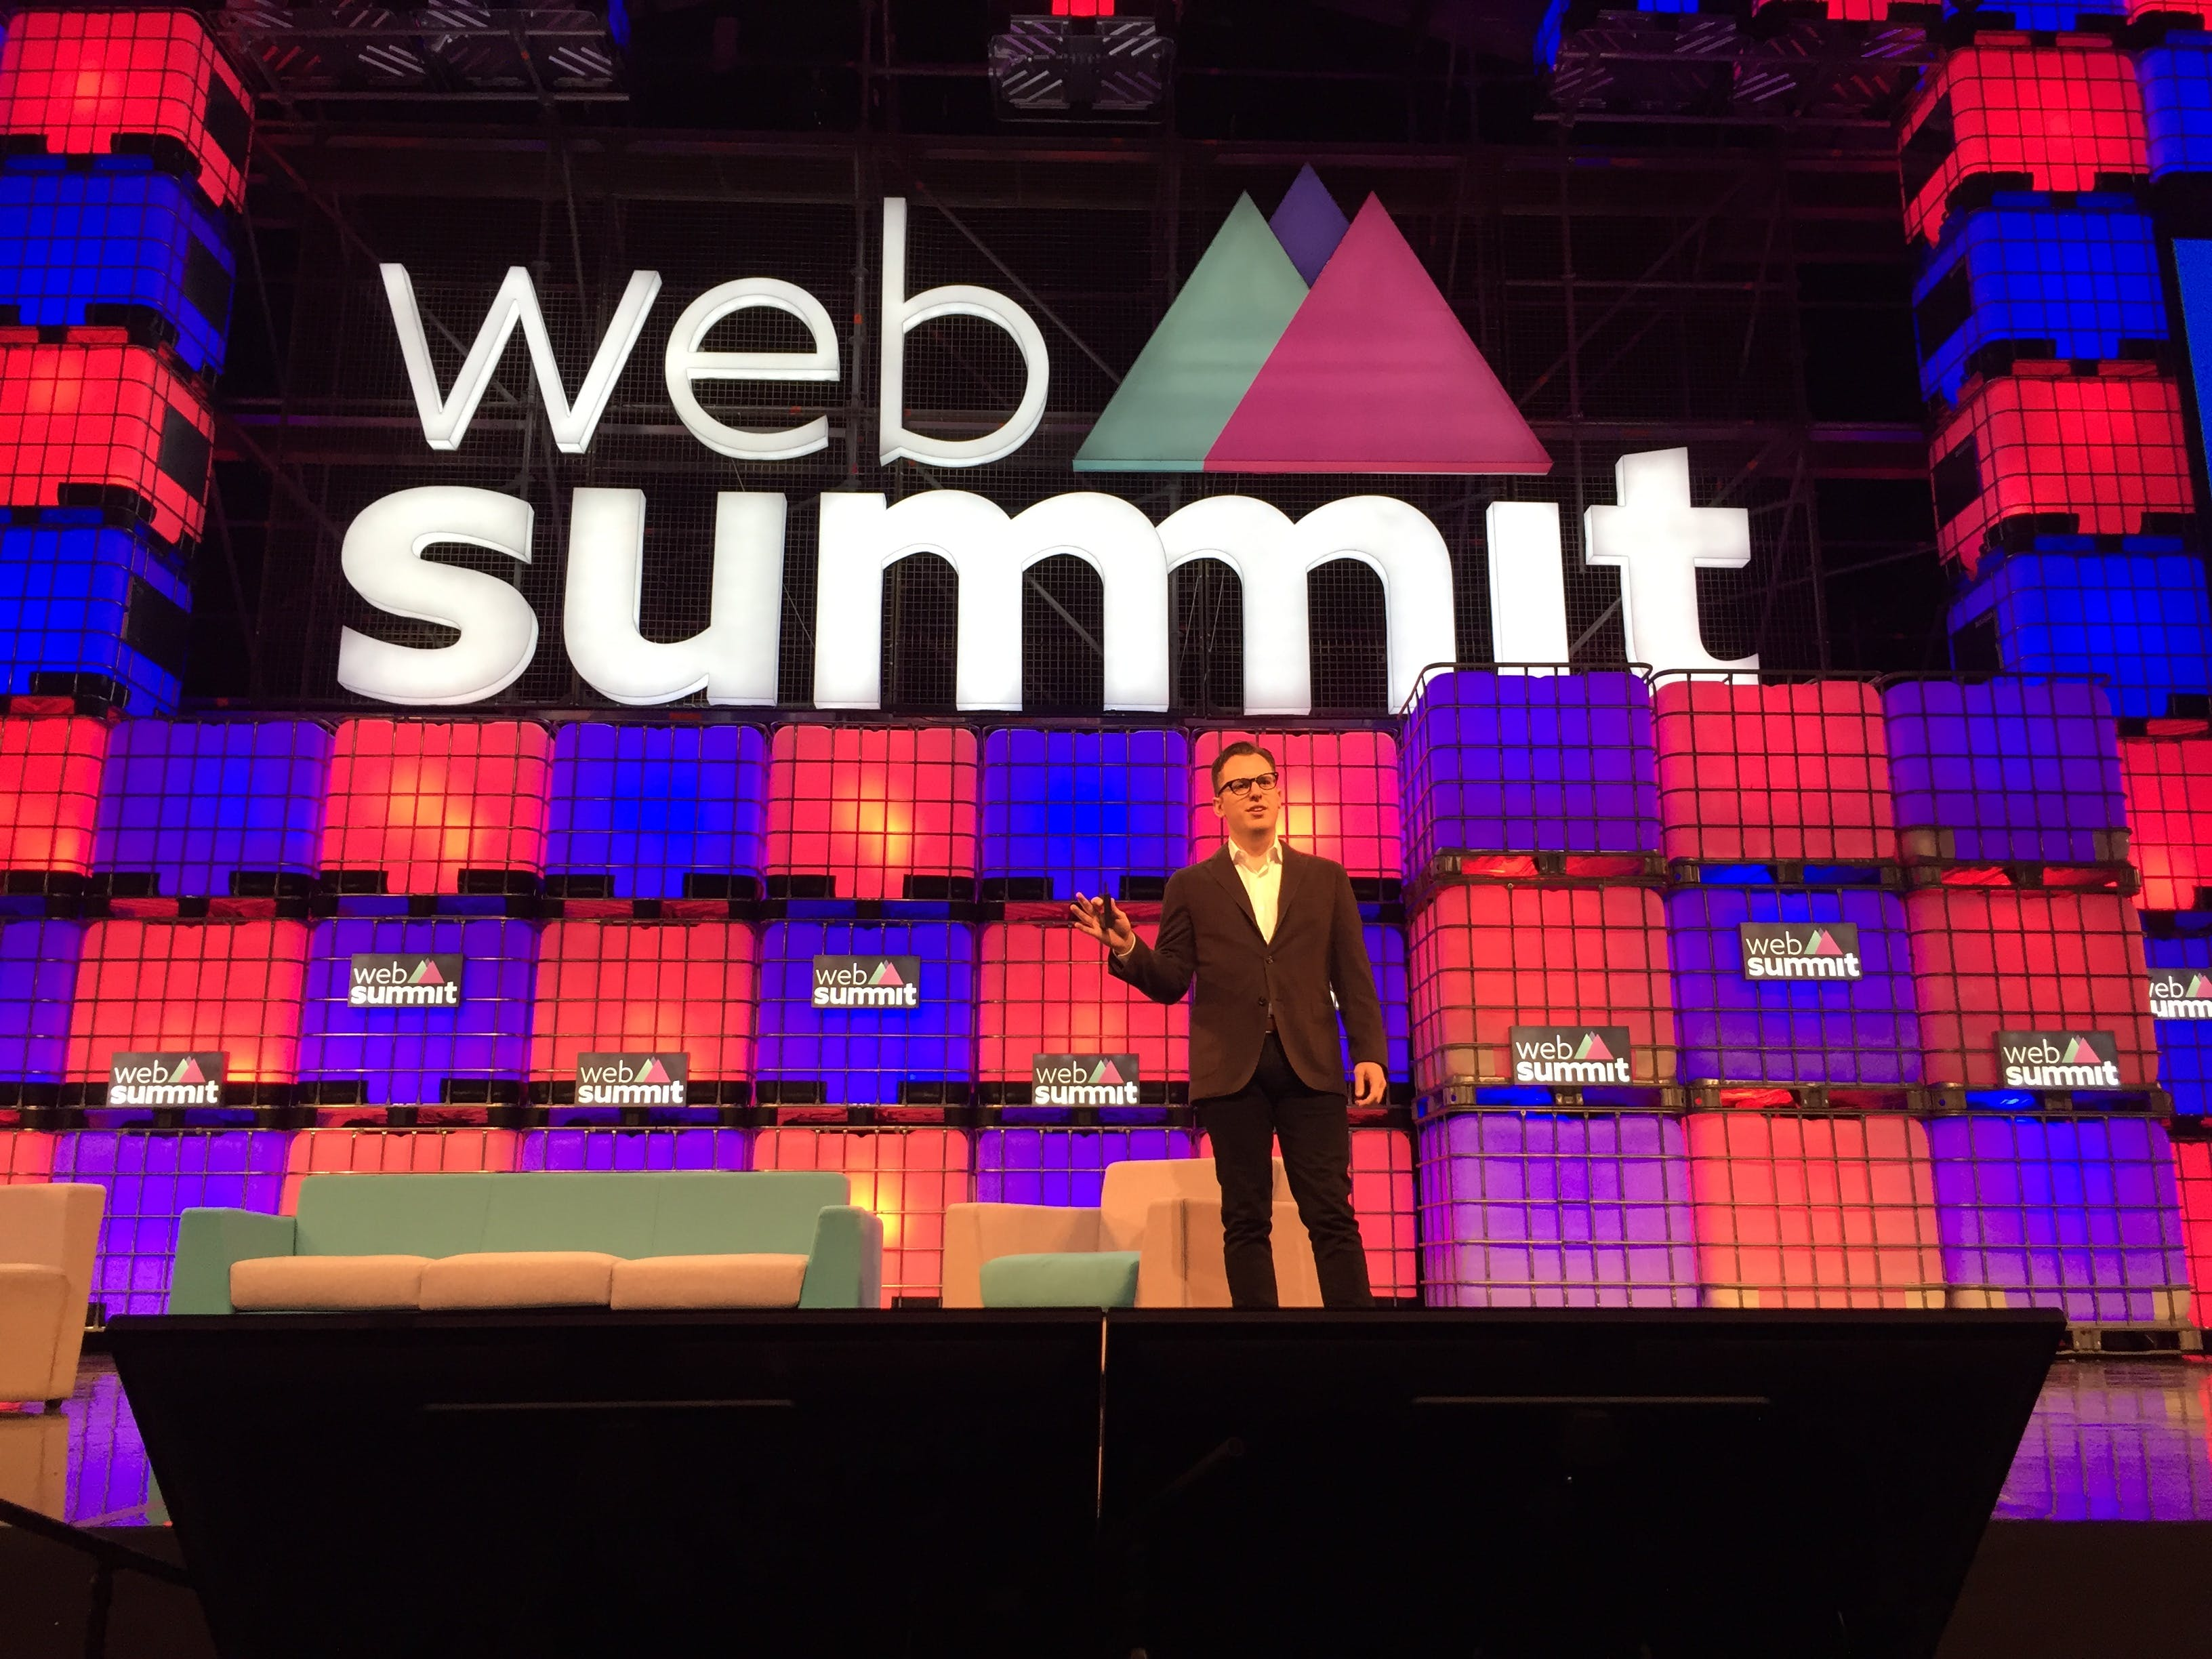 Instagram co-founder on stage at the Web Summit in Dublin